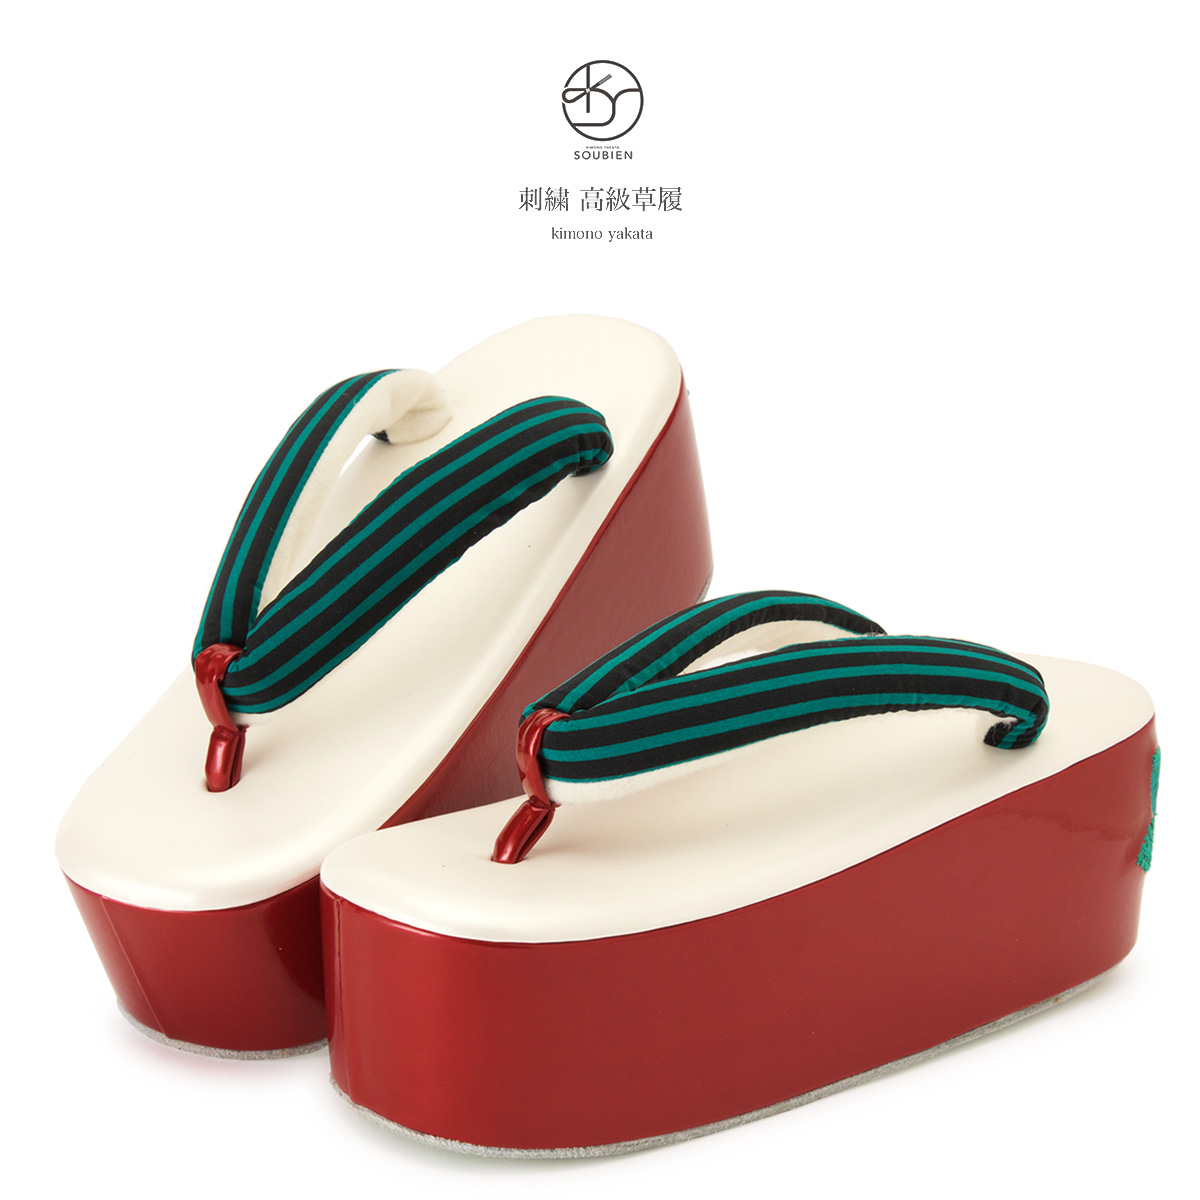 7d75539ddd23b I come, and sandals sandals Lady's woman for graduation ceremonies for  coming-of- ...